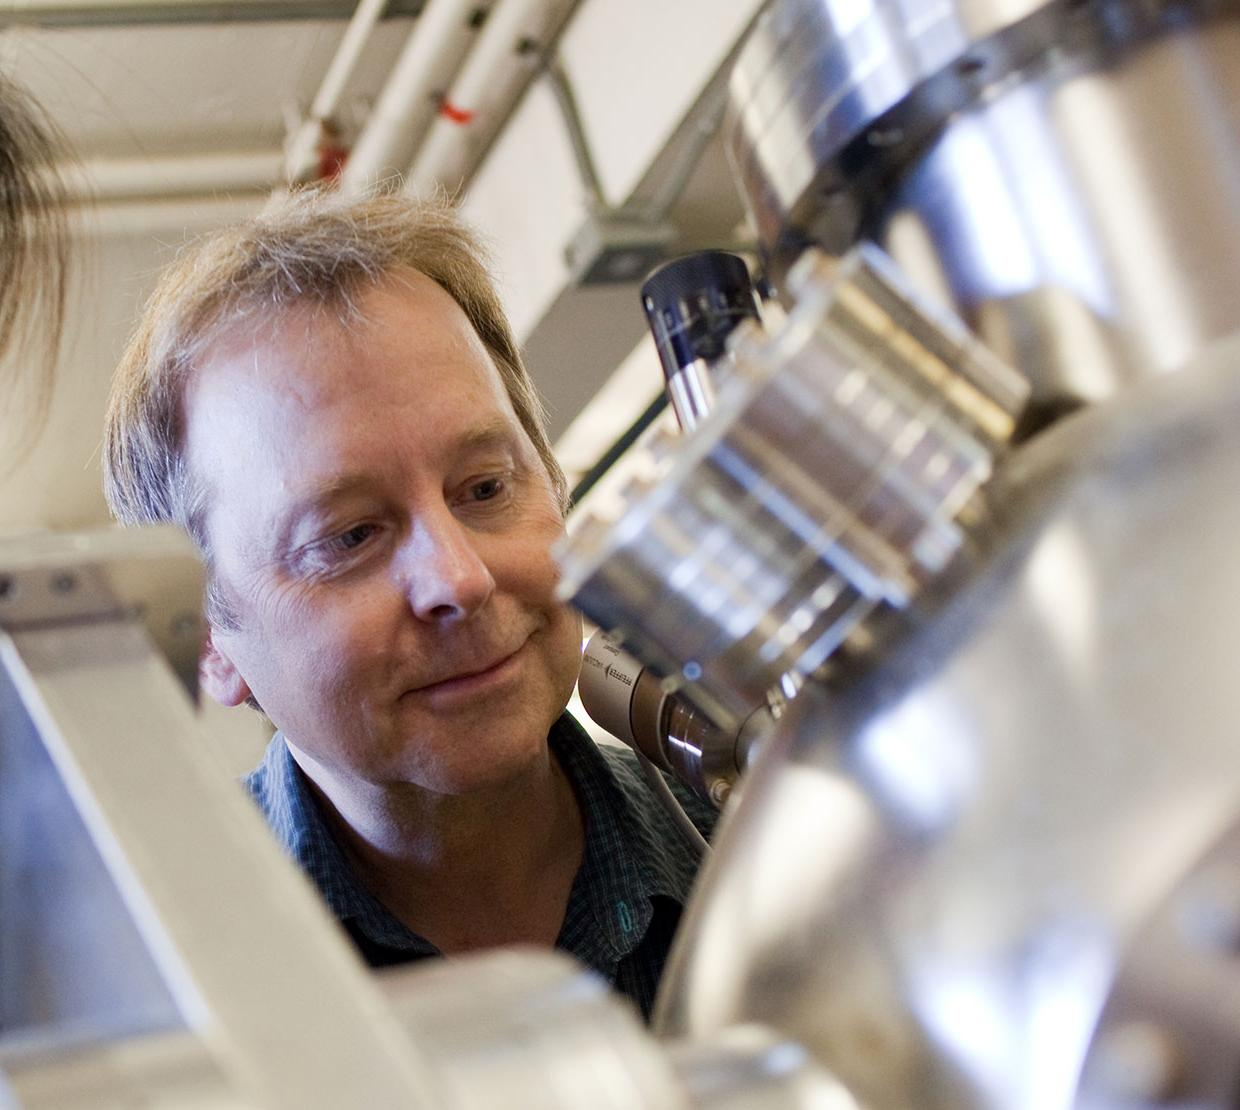 Doug Keszler looking though instruments in lab